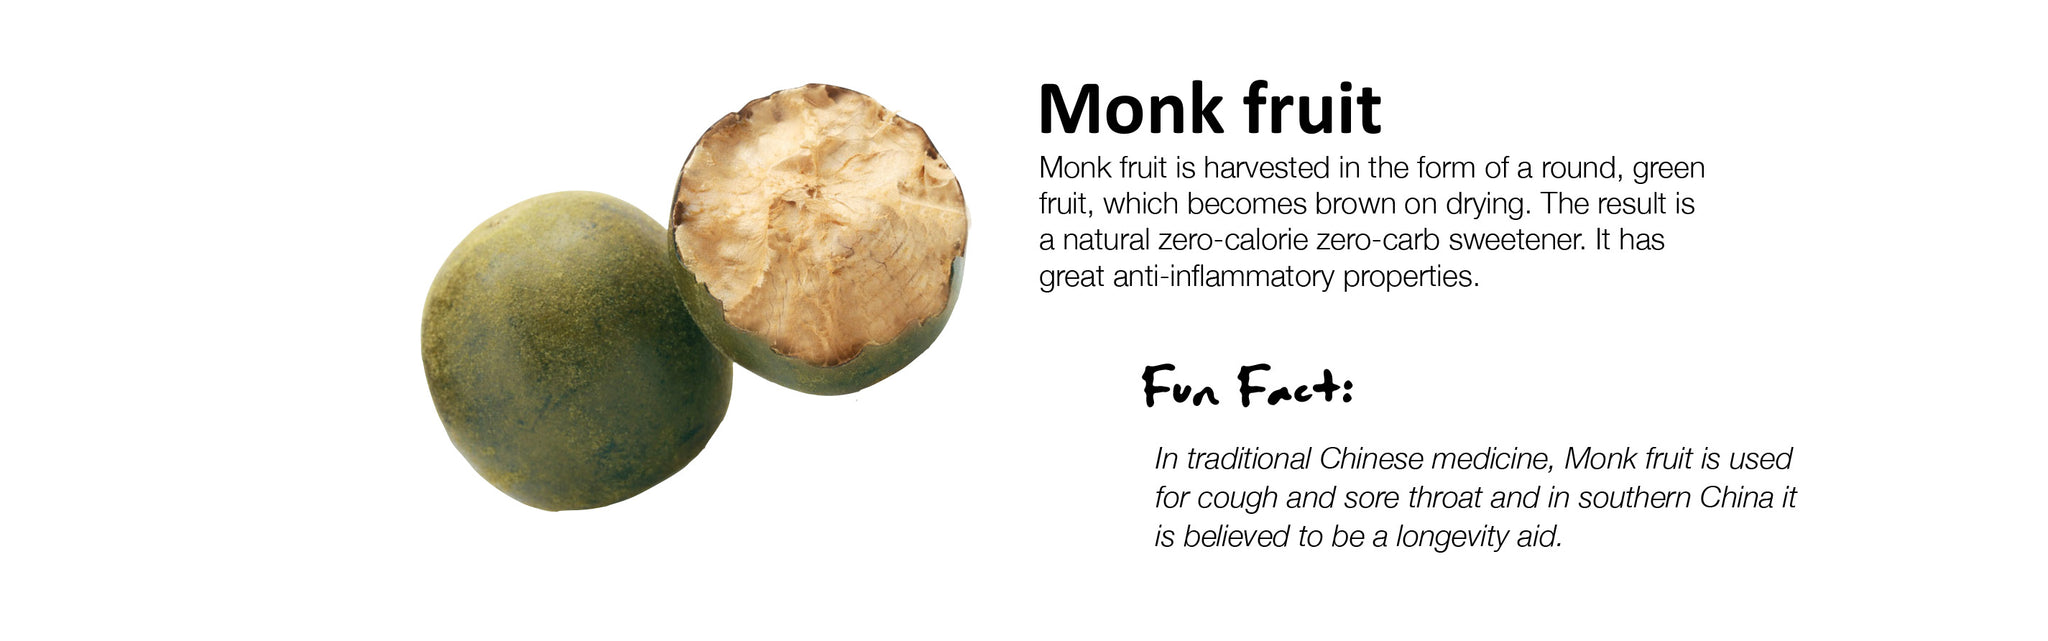 Monk fruit Monk fruit is harvested in the form of a round, green fruit, which becomes brown on drying. The result is a natural zero-calorie zero-carb sweetener. It has great anti-inflammatory properties.